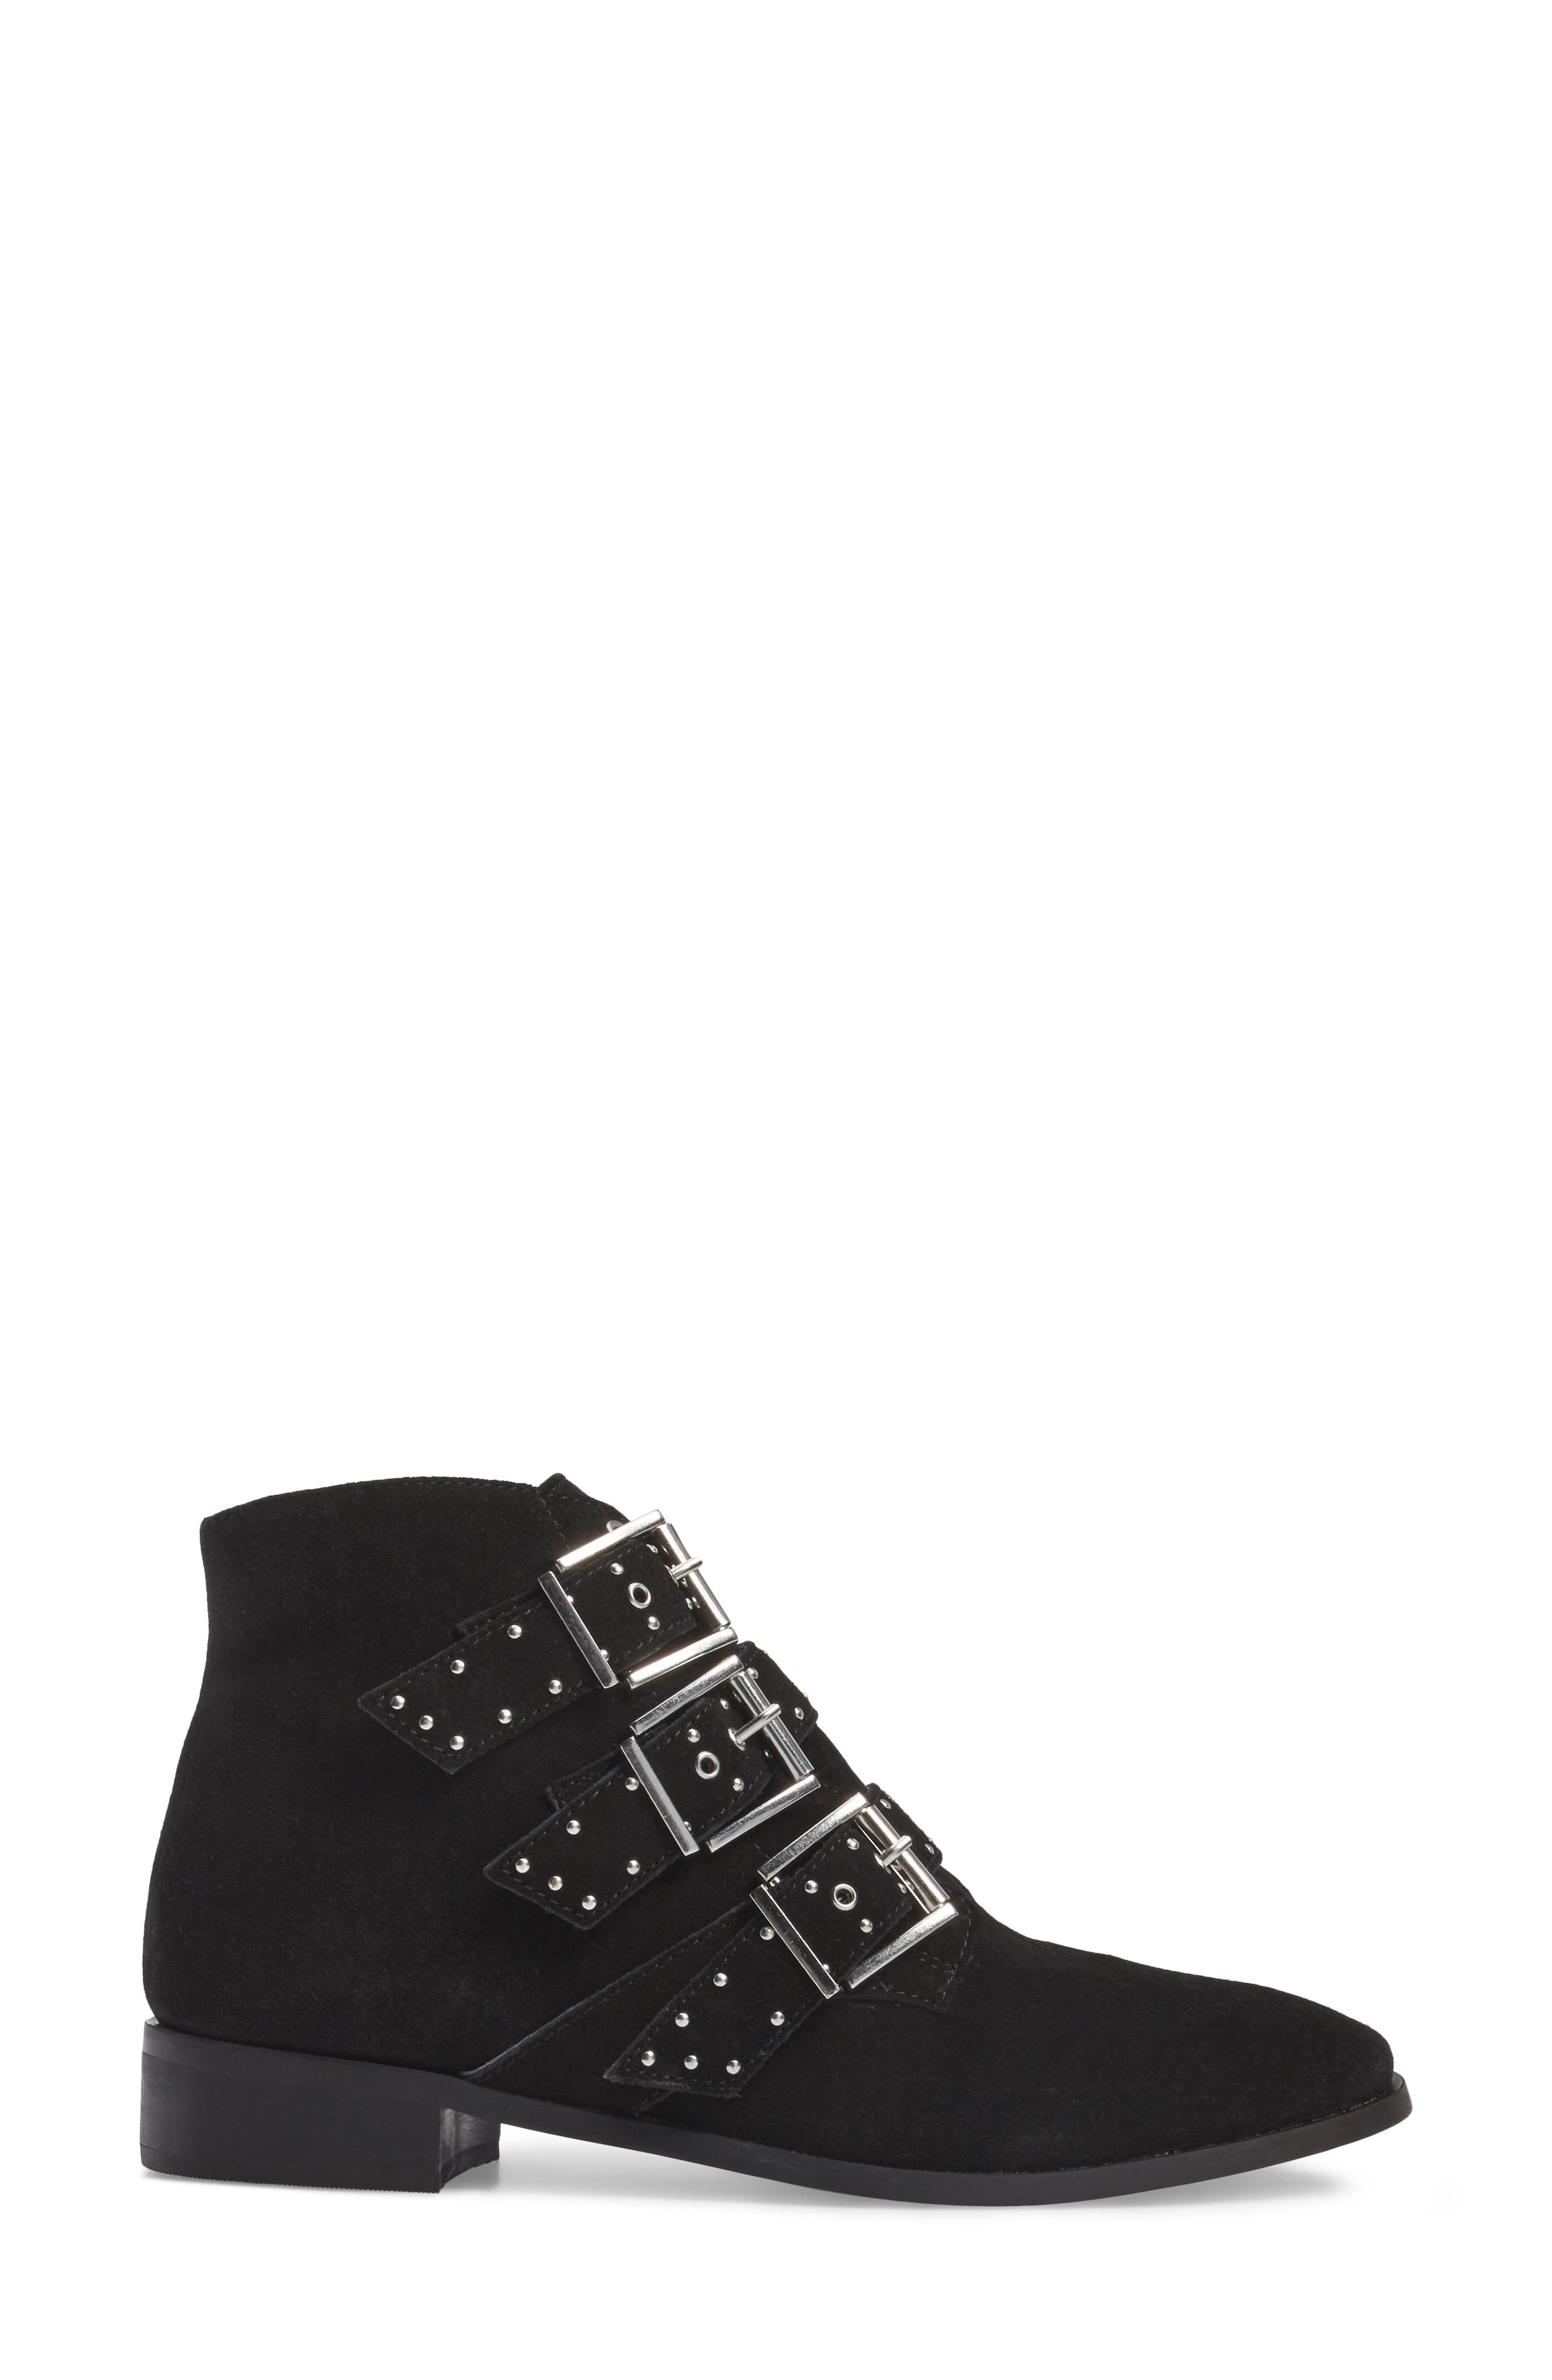 Krown Studded Bootie,                             Alternate thumbnail 5, color,